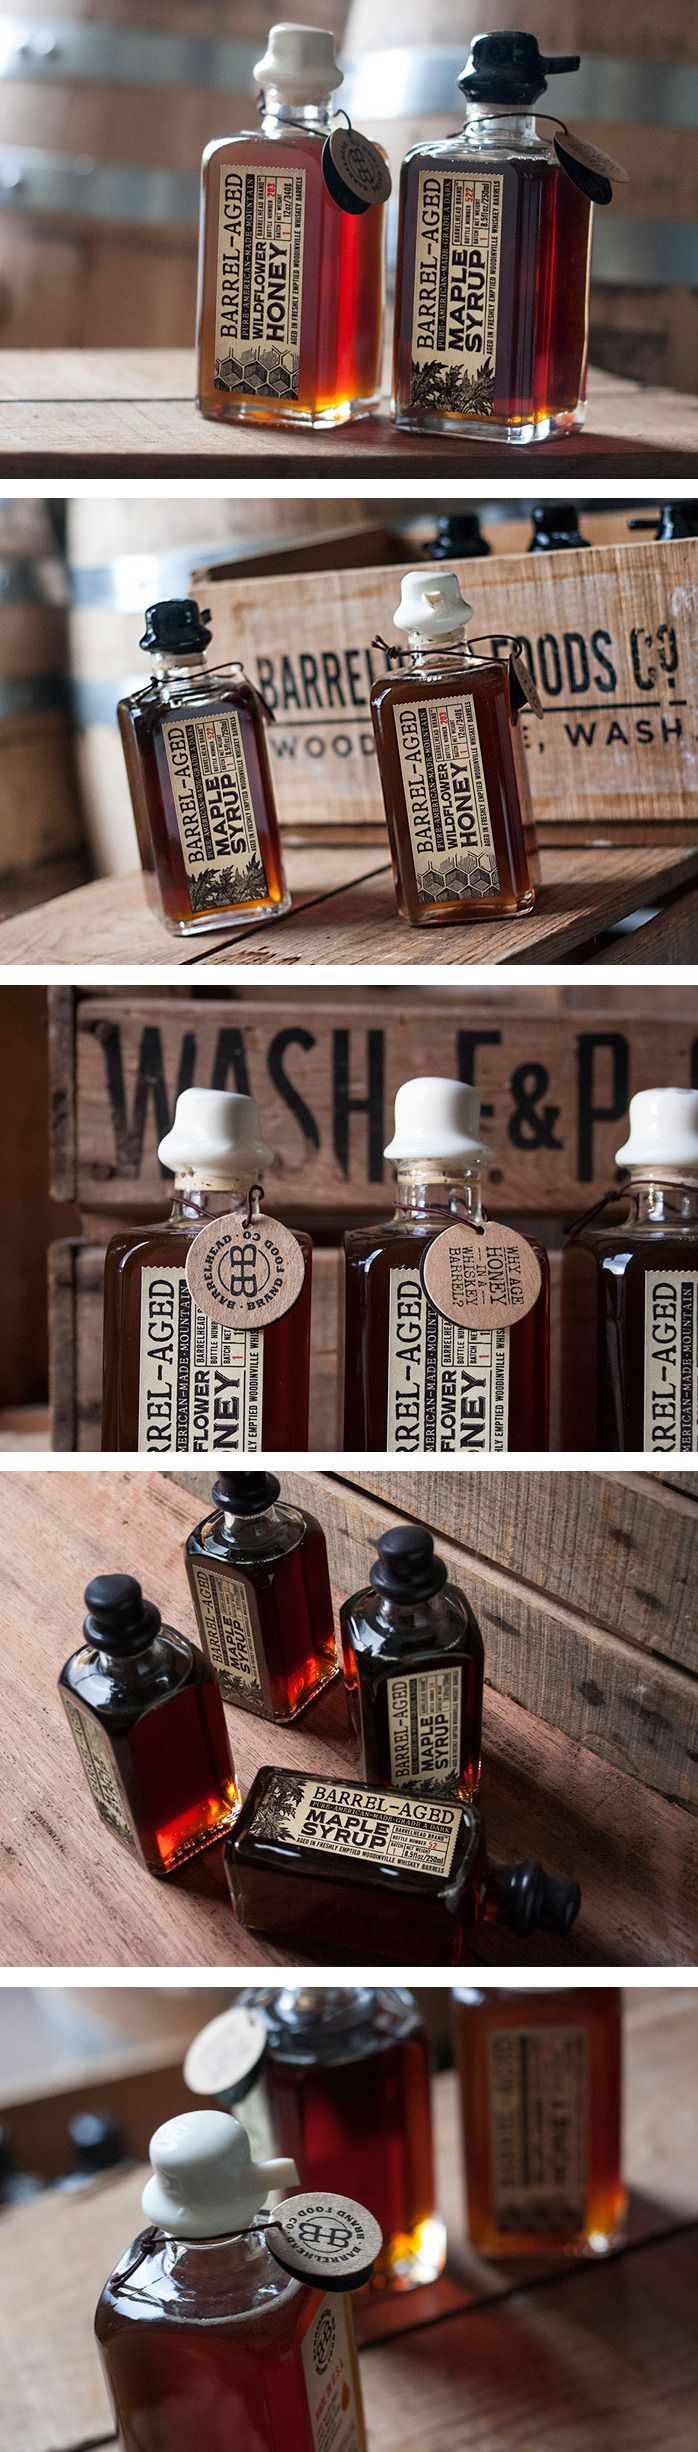 Lovely Barrelhead Foods #packaging be sure and take a closer look PD